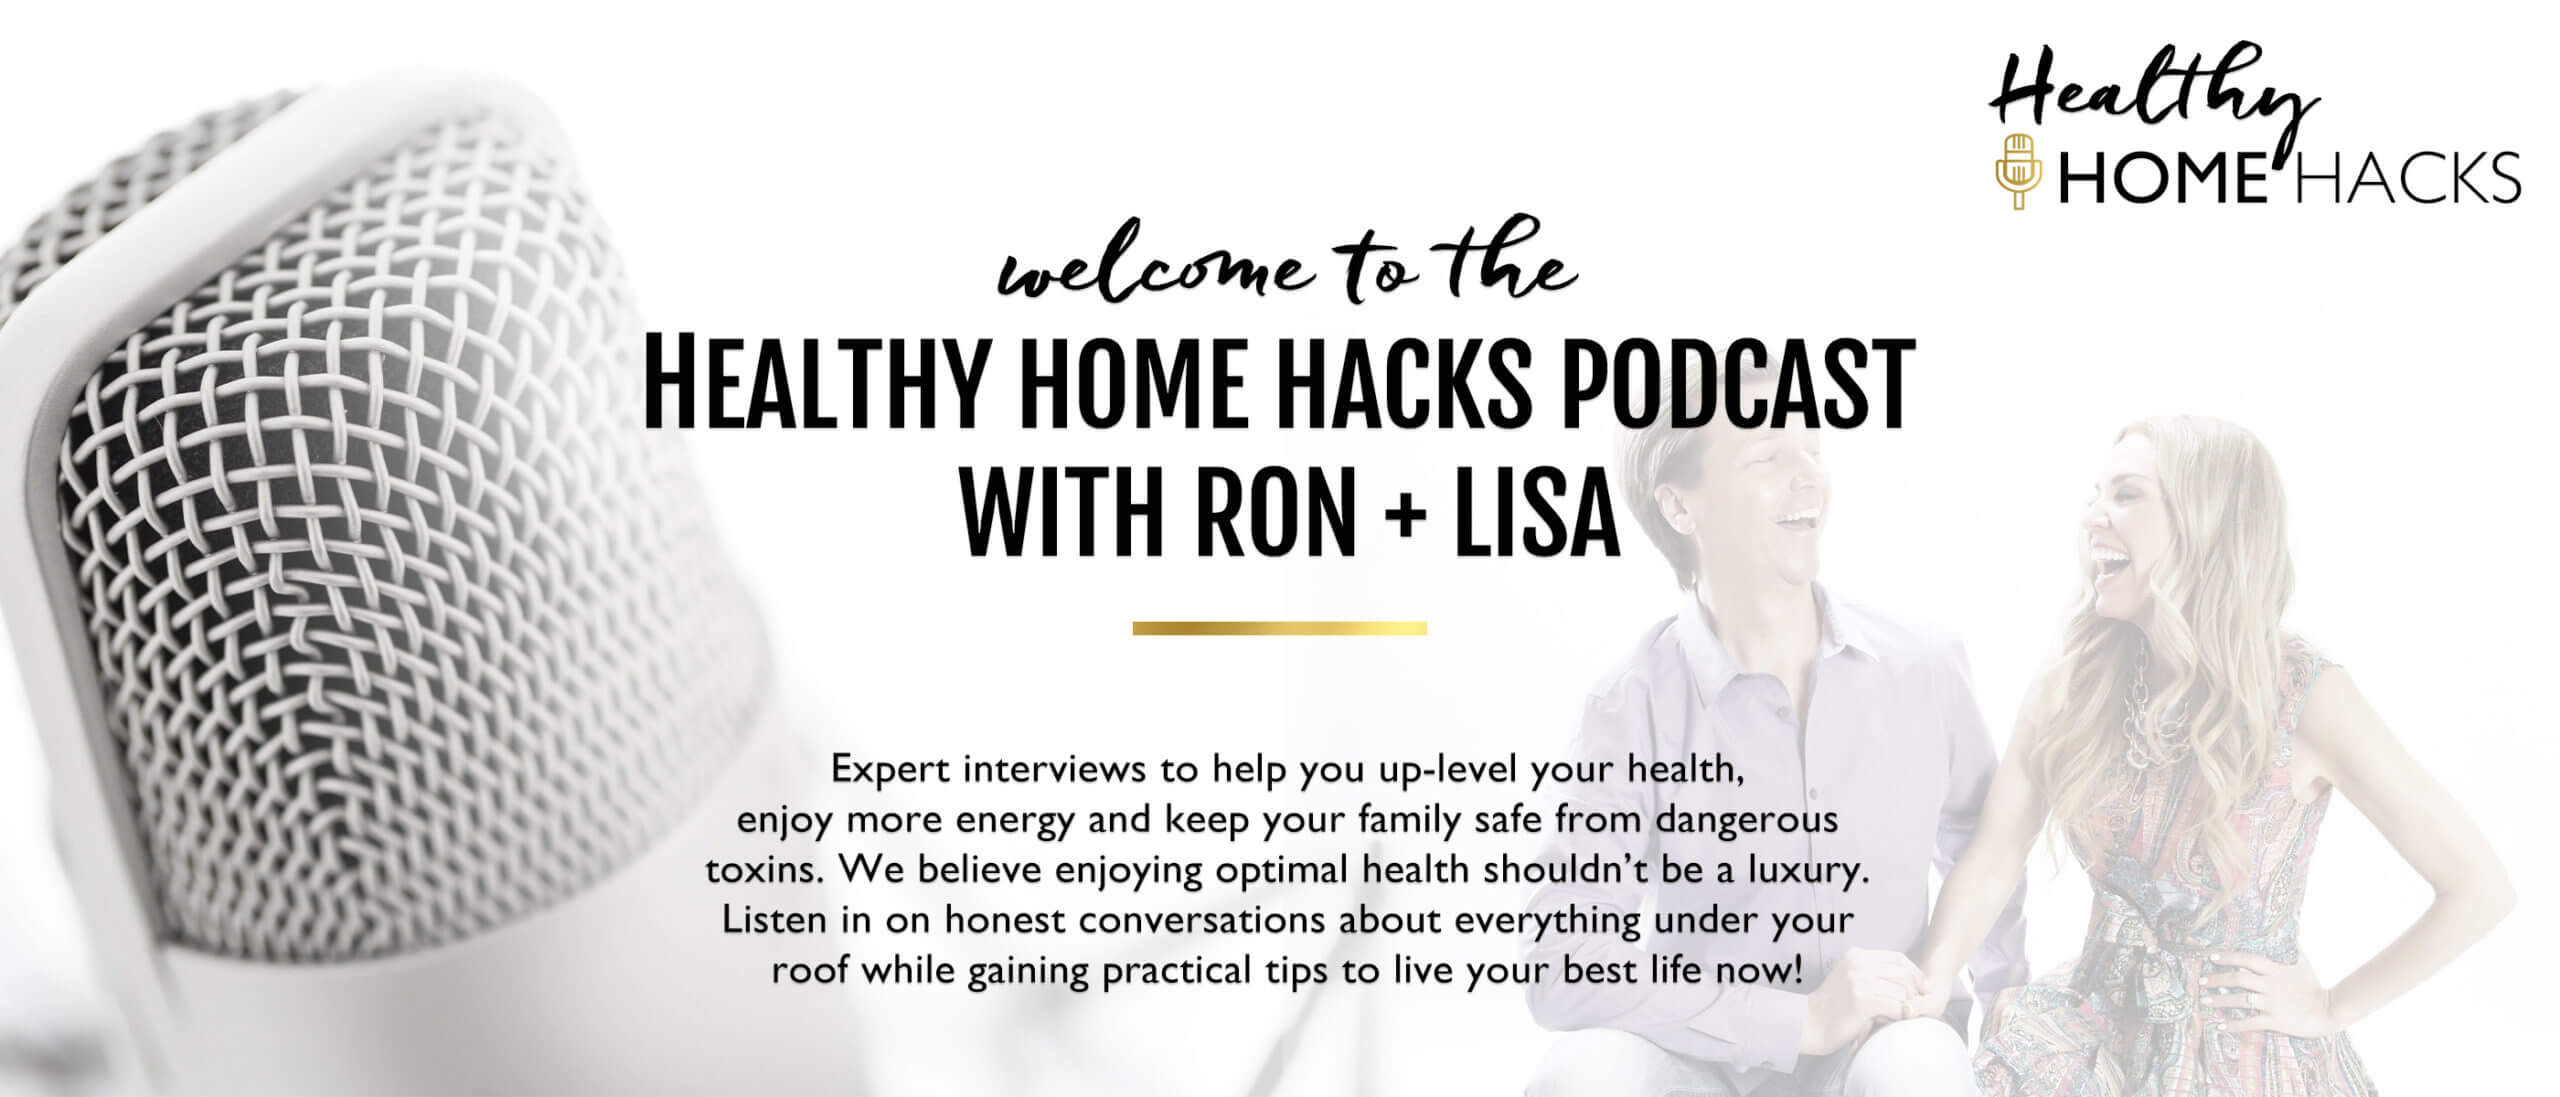 Healthy Home Hacks Podcast